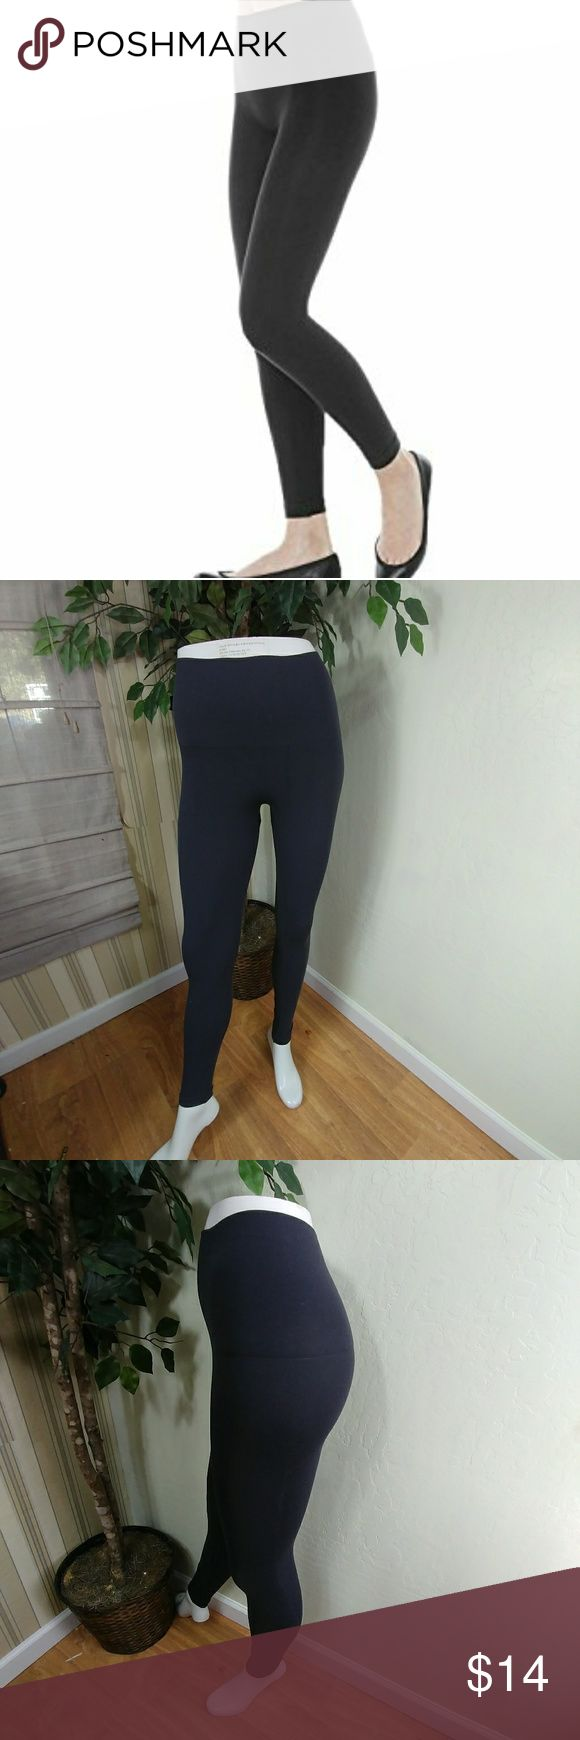 Star By Spanx Tout & About Shaping Leggings Star power by spanx tout an about shaping leggings, size small, color gray, densely ribbed fabric, seamless design, wide double-layer waistband,  comfortably firm the tummy, hips, rear and thighs, seamless construction with medium control; provides extra smoothness to hold in problem areas,ankle Length,  made of 90% nylon, 10% spandex,hand wash cold, line dry,  compare $30.00 retail price value,  comes new without tag or retail package as closeout…